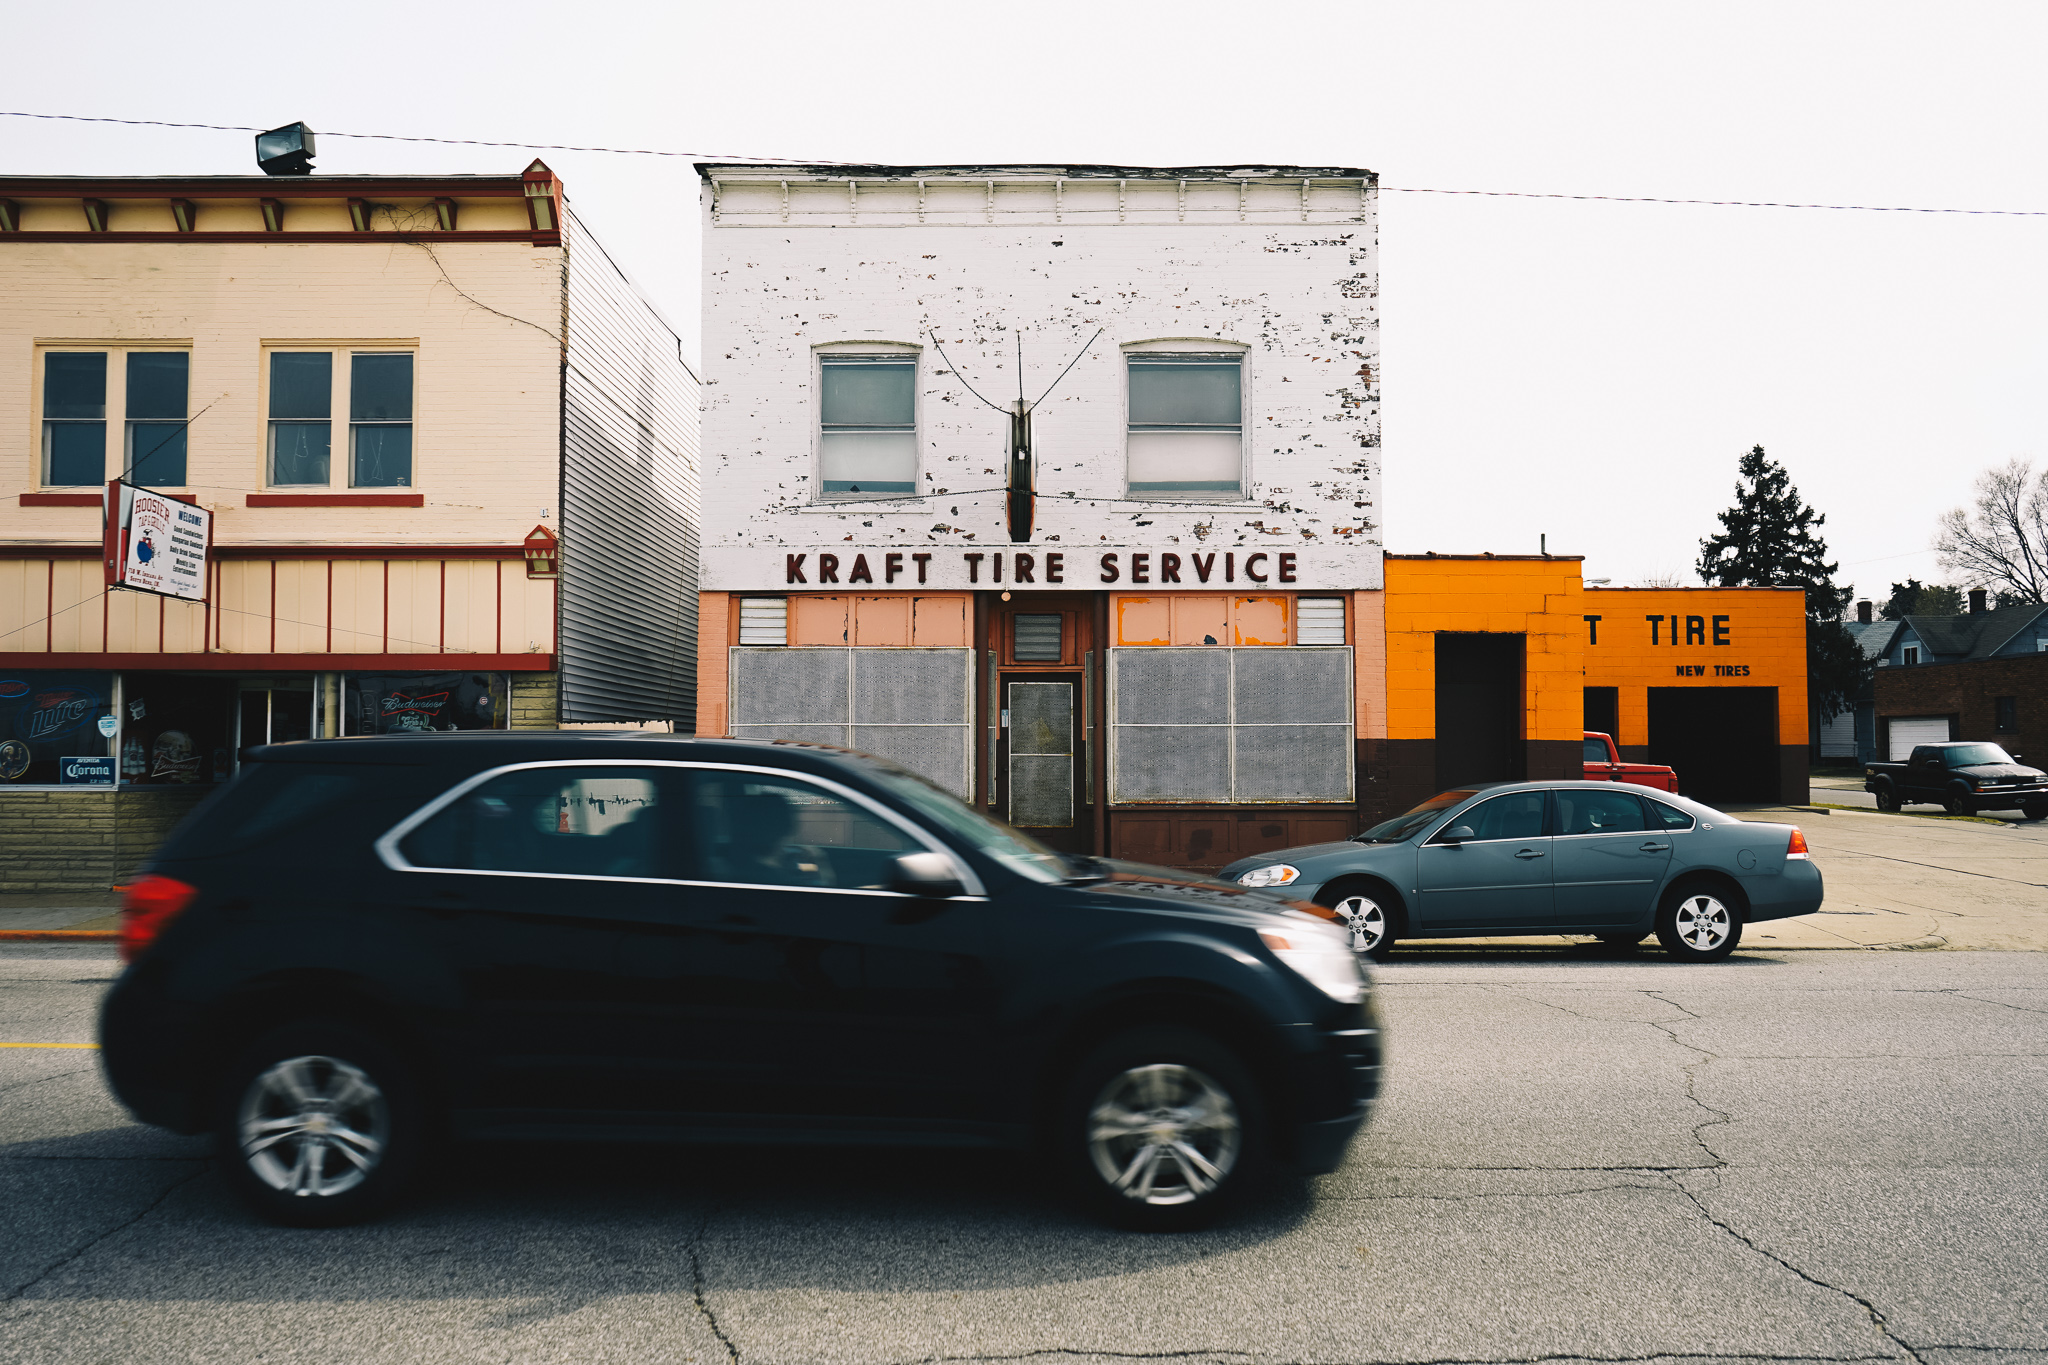 Indiana Avenue No. 1   A view of Kraft Tire Service, one of a string of storefronts along Indiana Avenue between the Rum Village neighborhood and the sprawling land formerly home to Studebaker and Oliver Plow. This photograph was featured in our April 2017 story  Afternoon Stroll on Indiana Avenue .